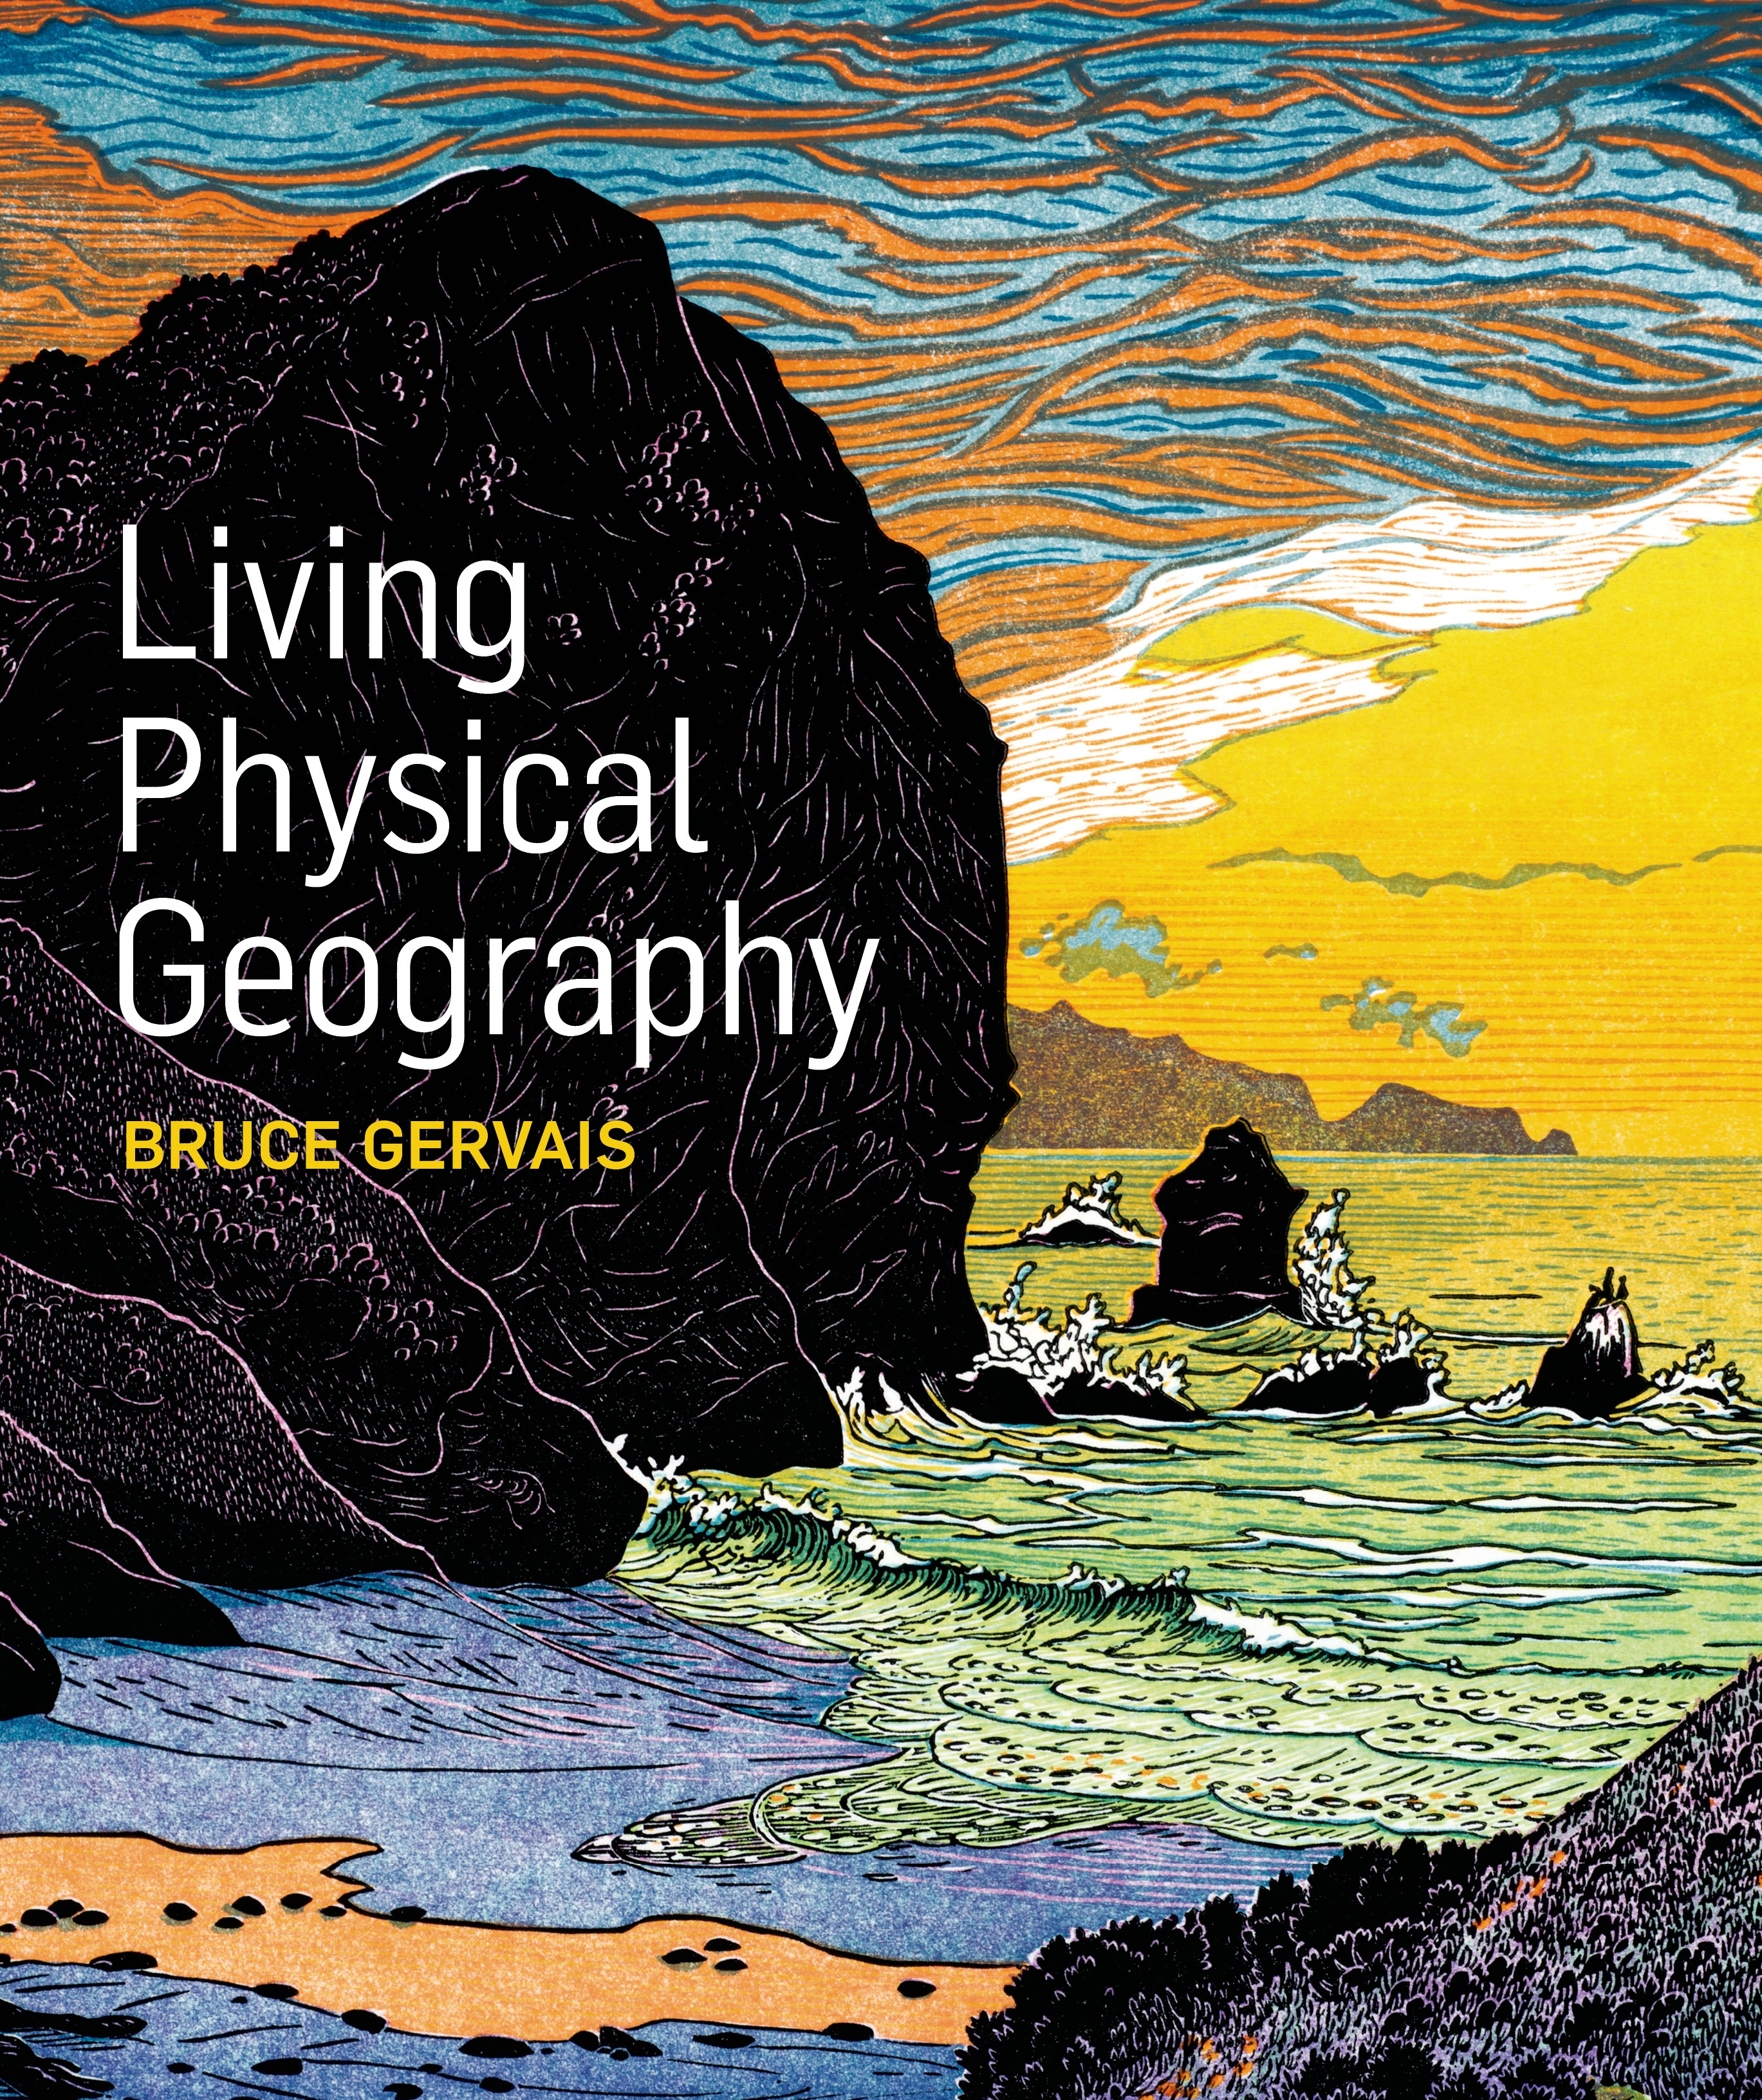 Living physical geography 9781464106644 macmillan learning download image living physical geography fandeluxe Images